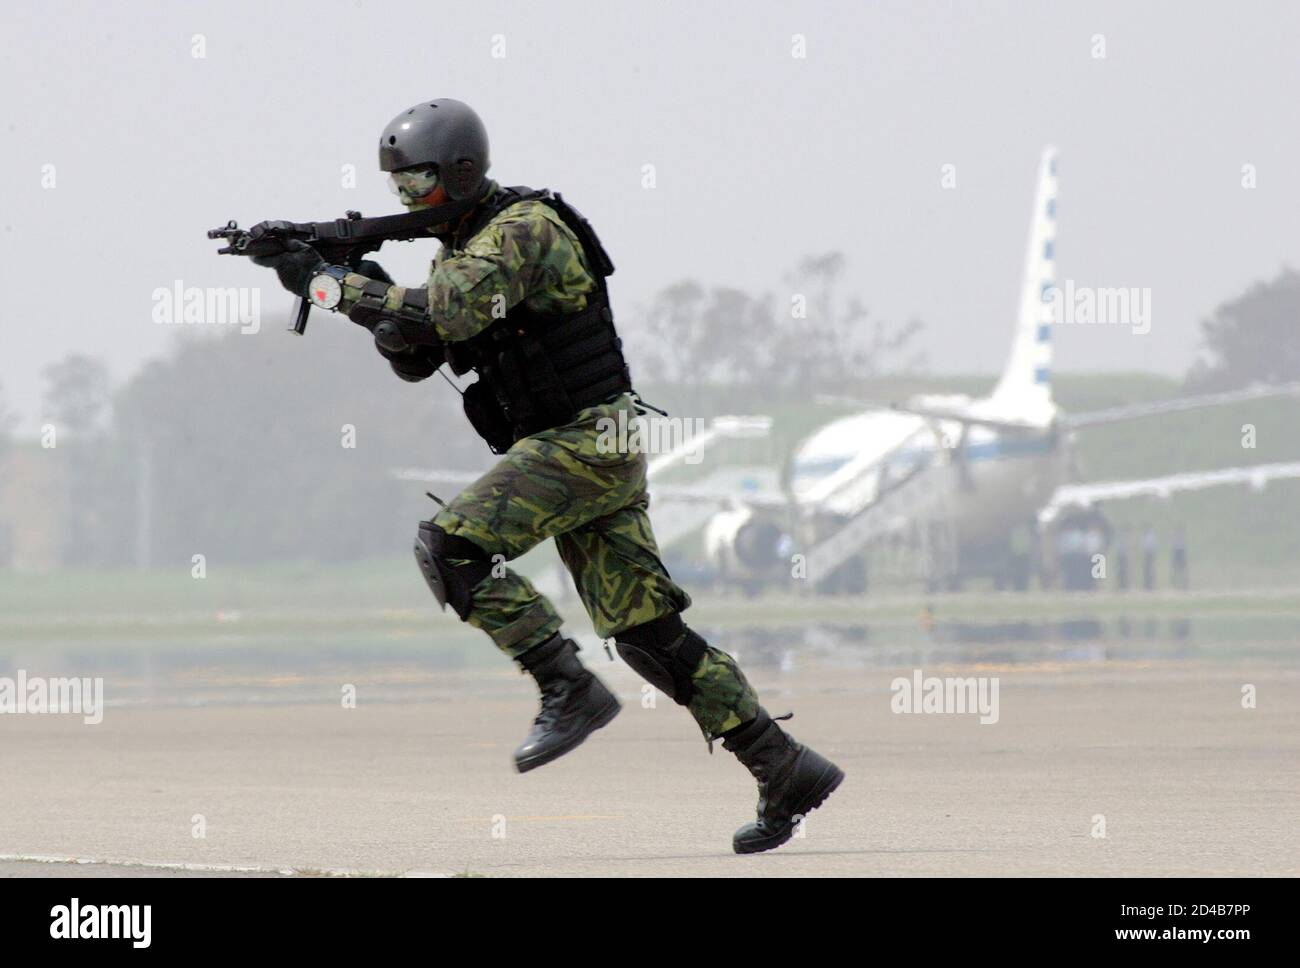 """Taiwanese soldier from special forces division takes part in anti-airborne drill at CCK air base in central city of Taiwan.  A Taiwanese soldier from the special forces division takes part in an anti-airborne drill at the CCK air base, in the central city of Taiwan, July 27, 2005. The military exercise, involving simulated repulsion of airborne assaults on an airbase, are part of Taiwan's annual """"Han Kuang"""", or Chinese Glory, exercises aimed at testing the military's readiness against a Chinese invasion. Taiwan President Chen Shui-bian warned on Tuesday that arch-rival China's growing missile  Stock Photo"""